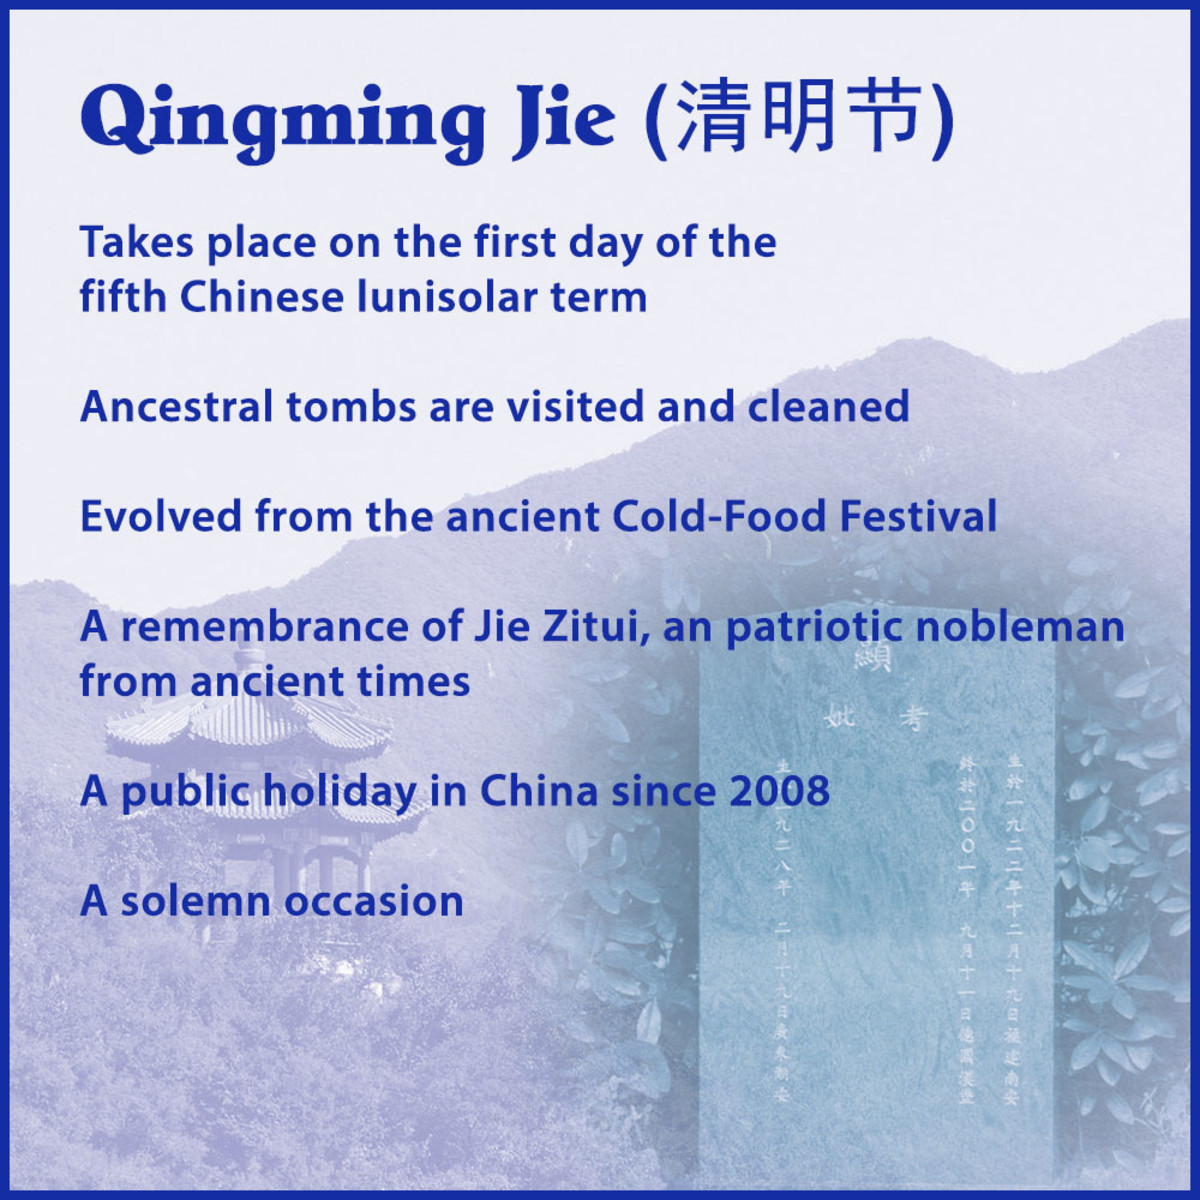 Qingming Jie is the Chinese equivalent of the Mexican Day of the Dead.